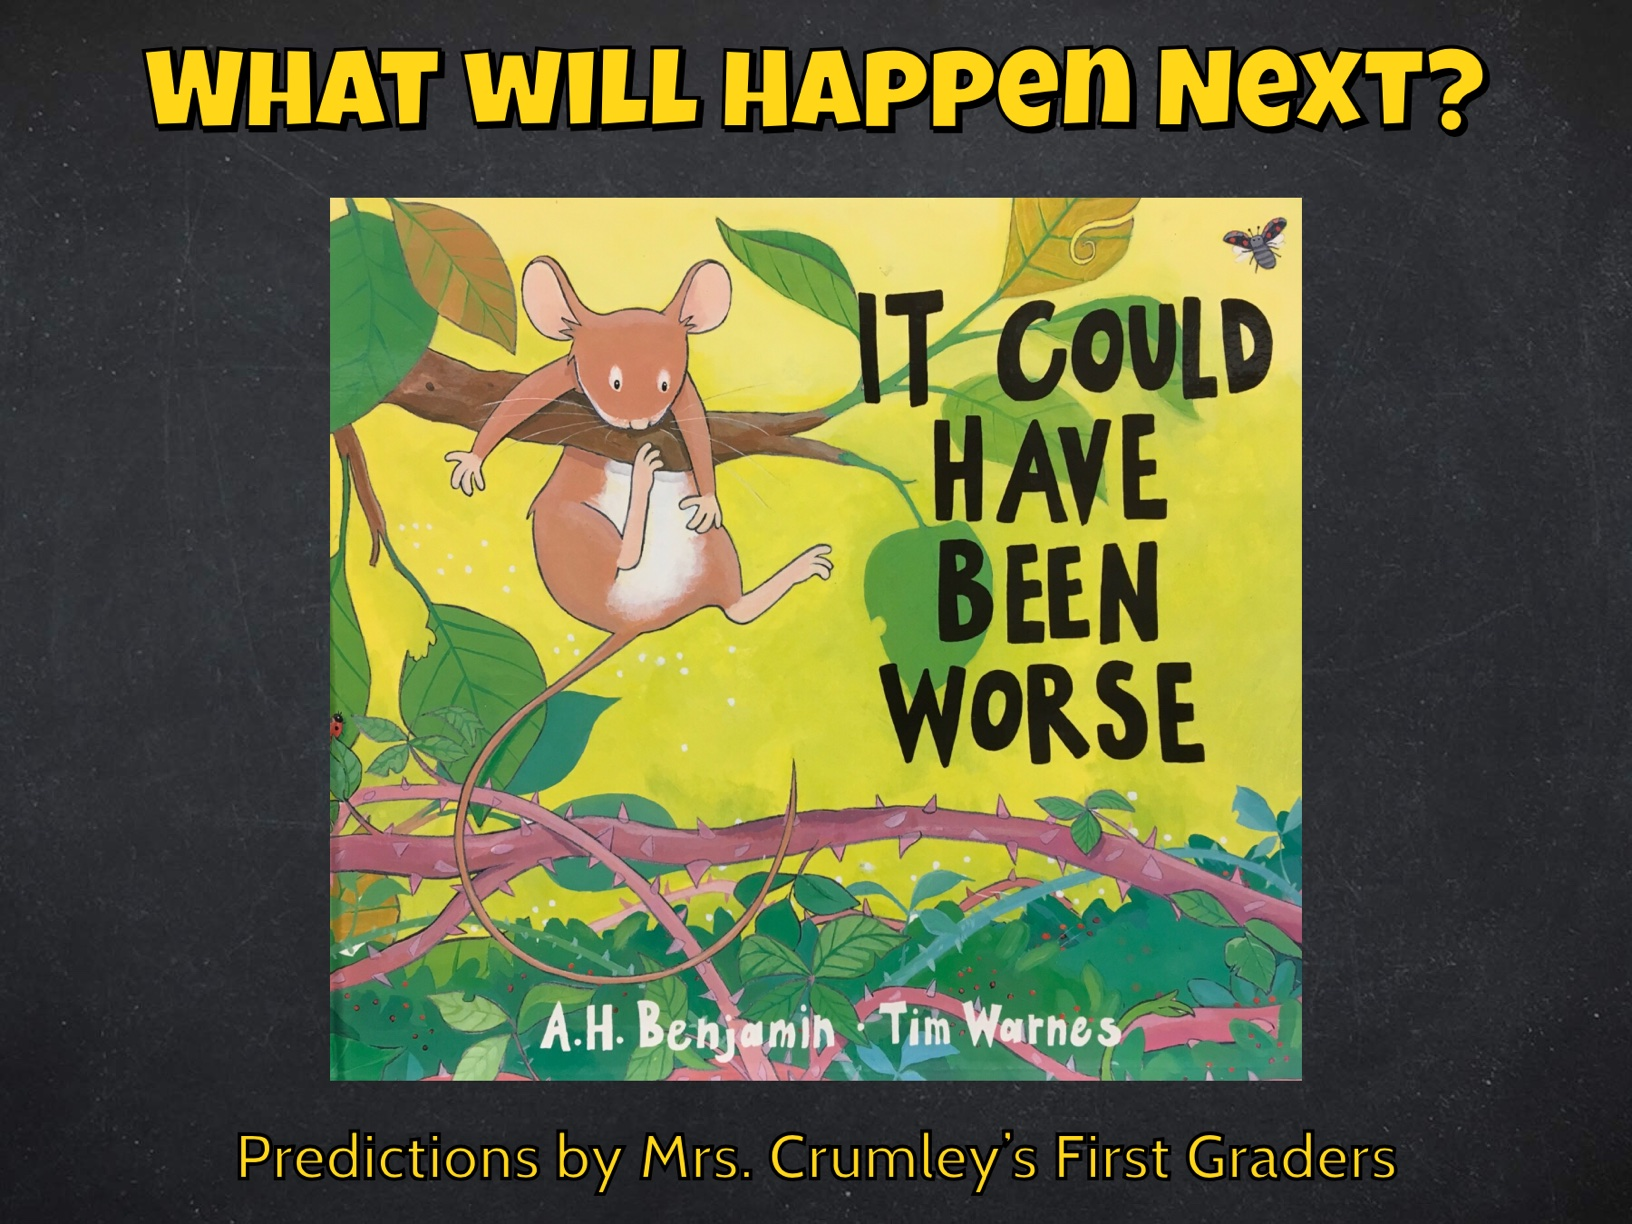 What Happened to the Fox_Mrs. Crumley's Class Predictions